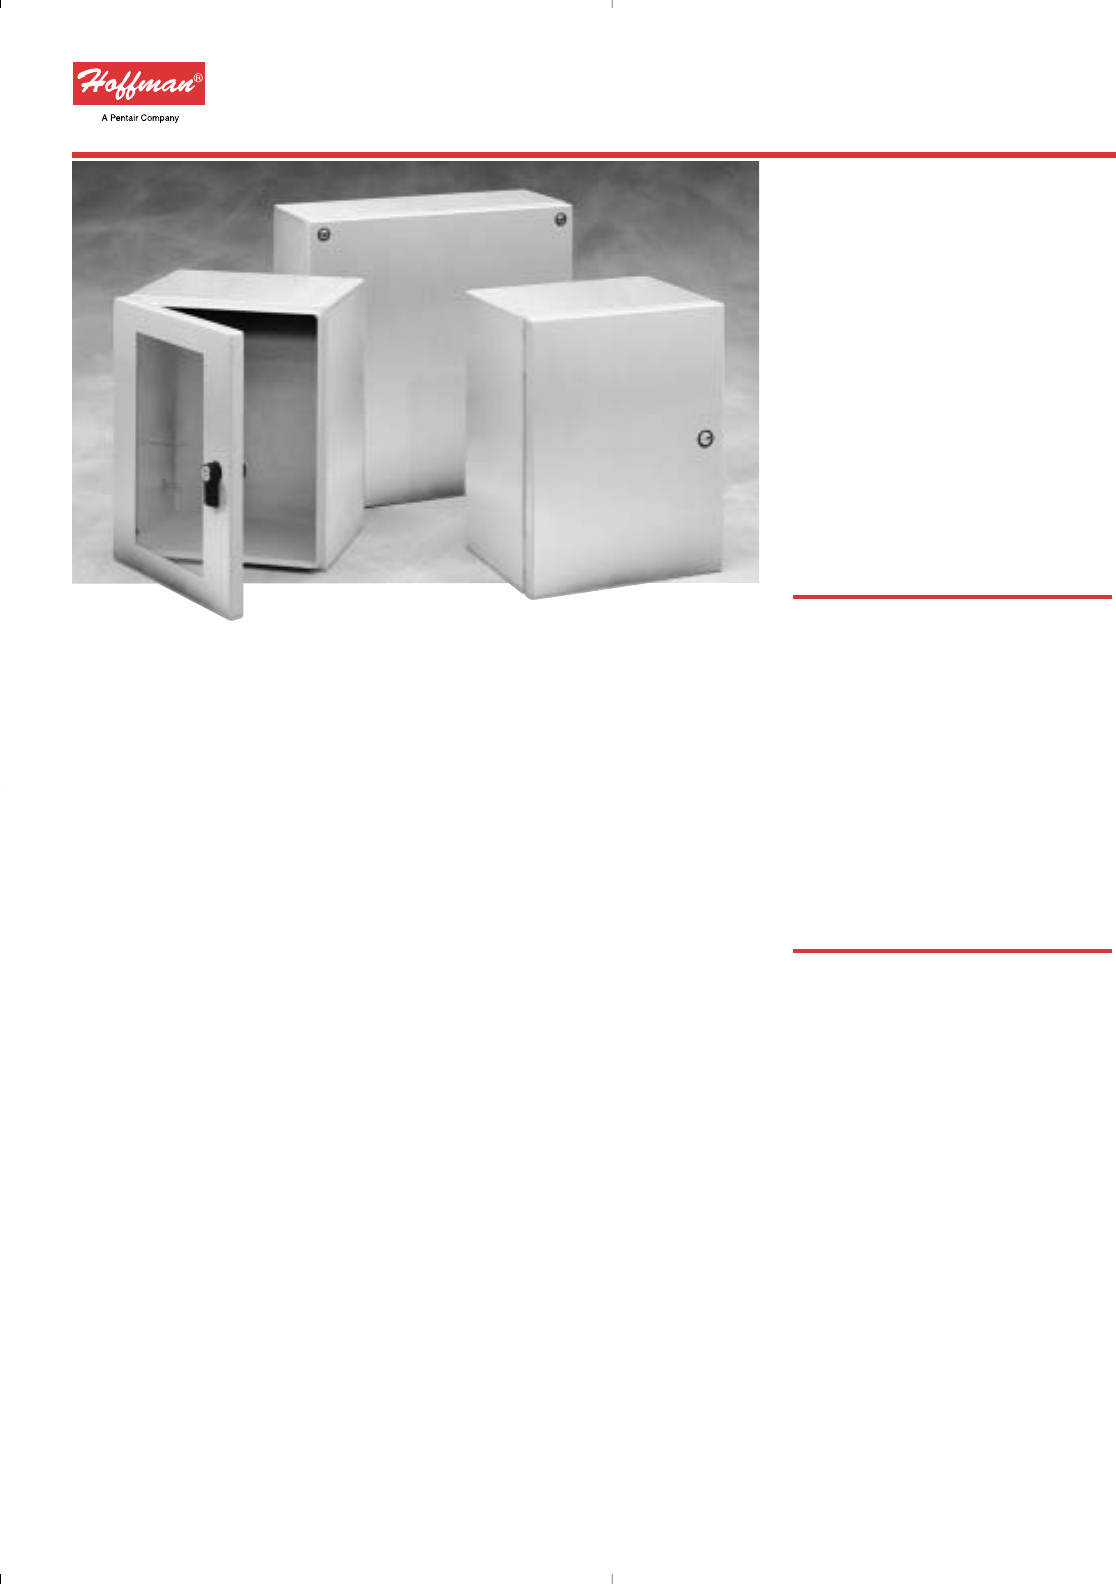 J Box//4.88 x 4.88 Fits 6 x 6 Stainless Steel Type 304//Aluminum Hoffman A6P6SS Conductive Panels for JIC Enclosure